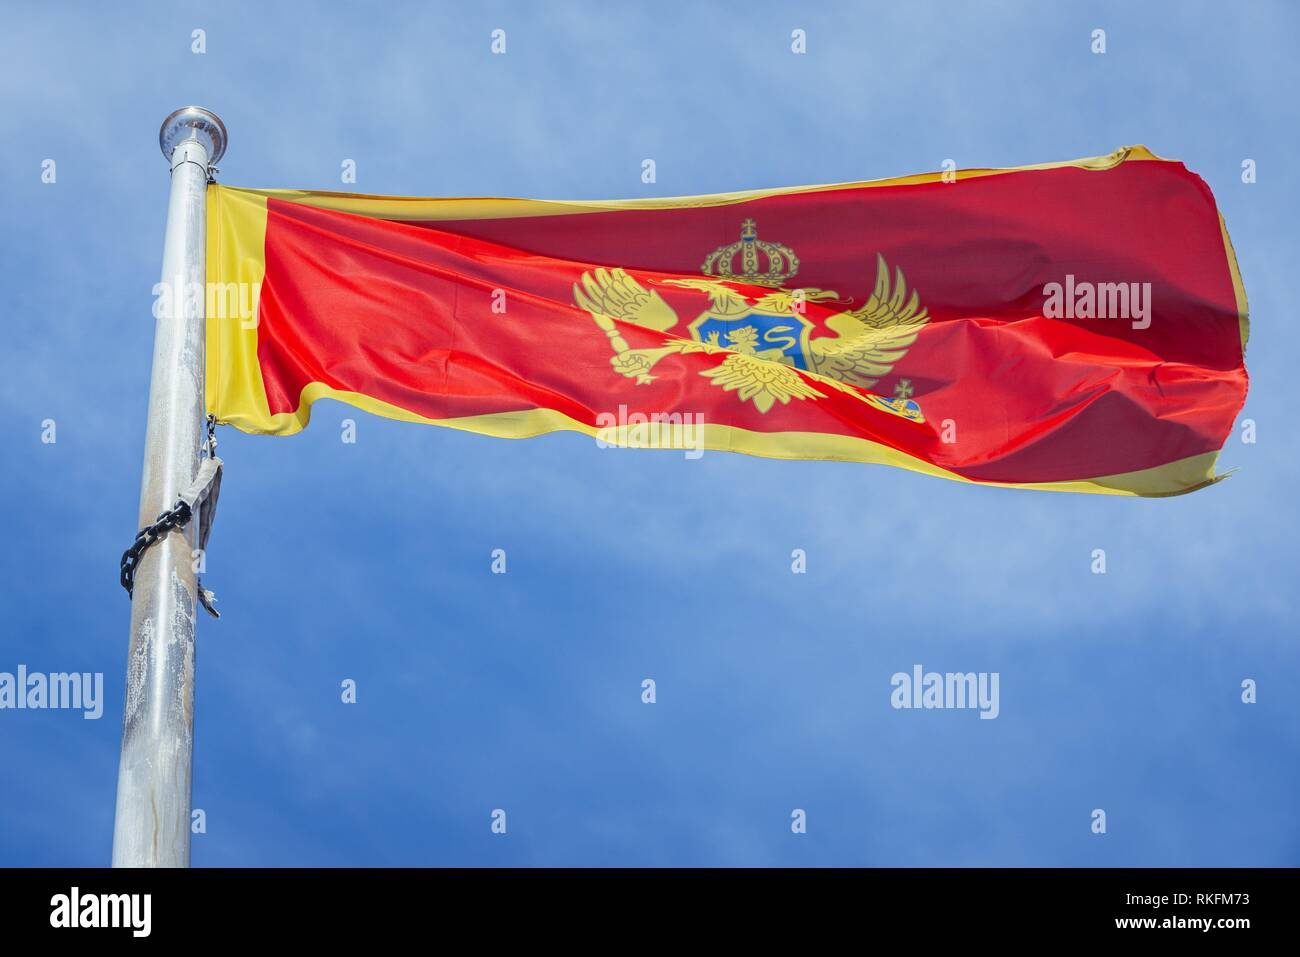 Montenegrin flag in Citadel on the Old Town of Budva city on the Adriatic Sea coast in Montenegro. Stock Photo